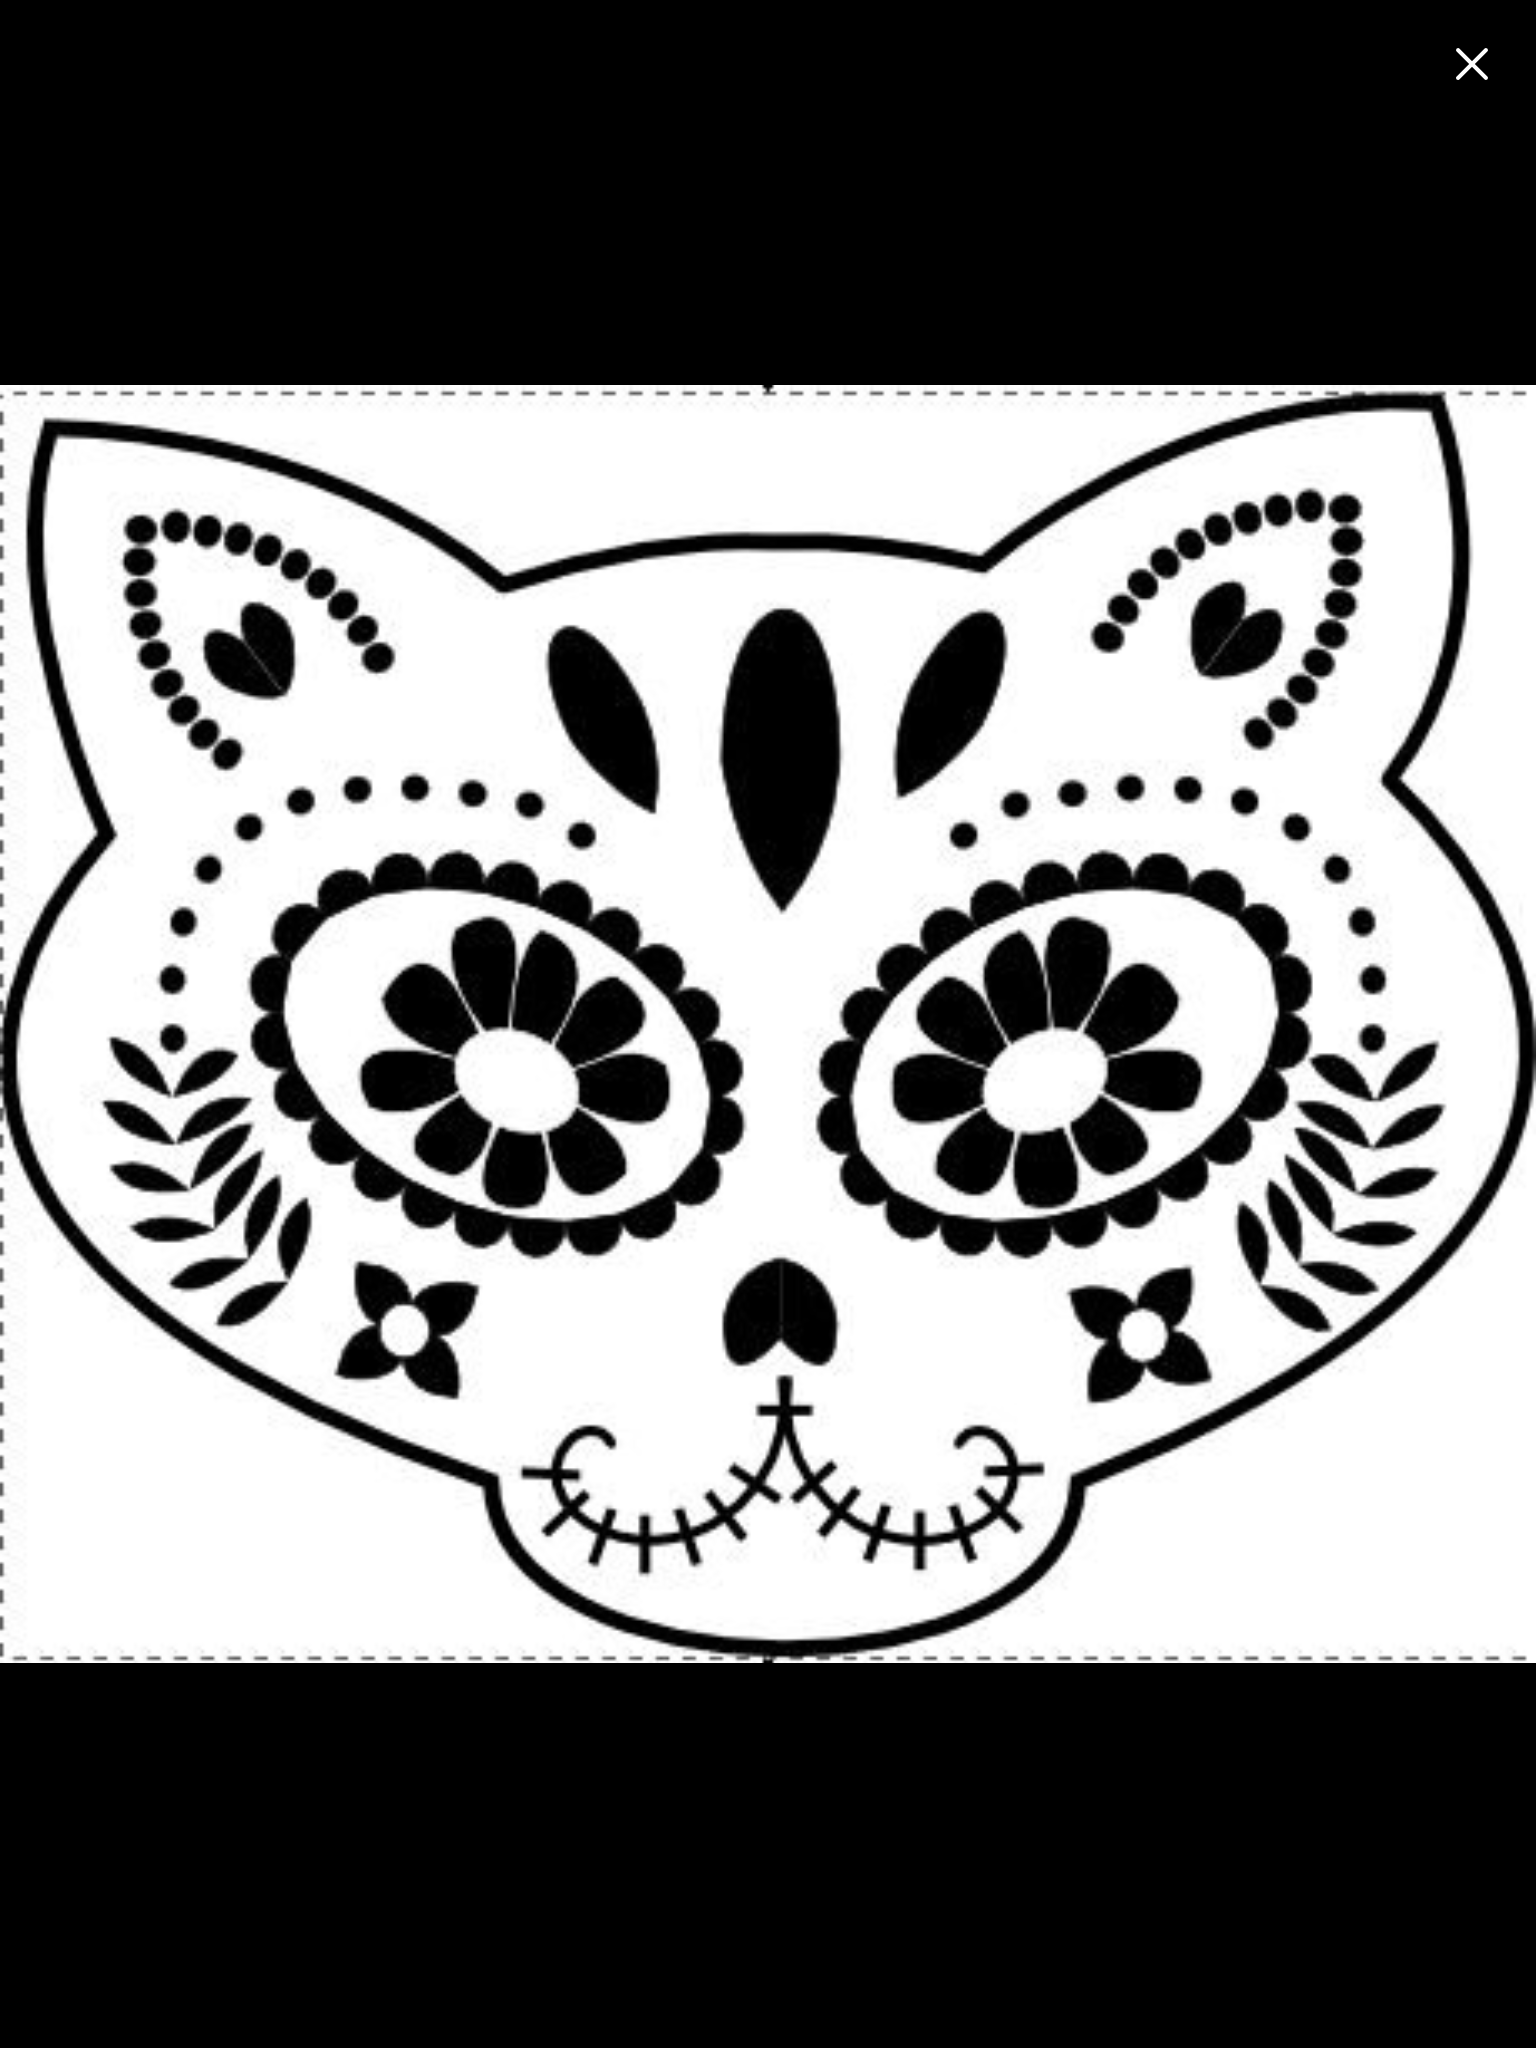 sugar skull template skeleton skull drawing at getdrawings free download template skull sugar